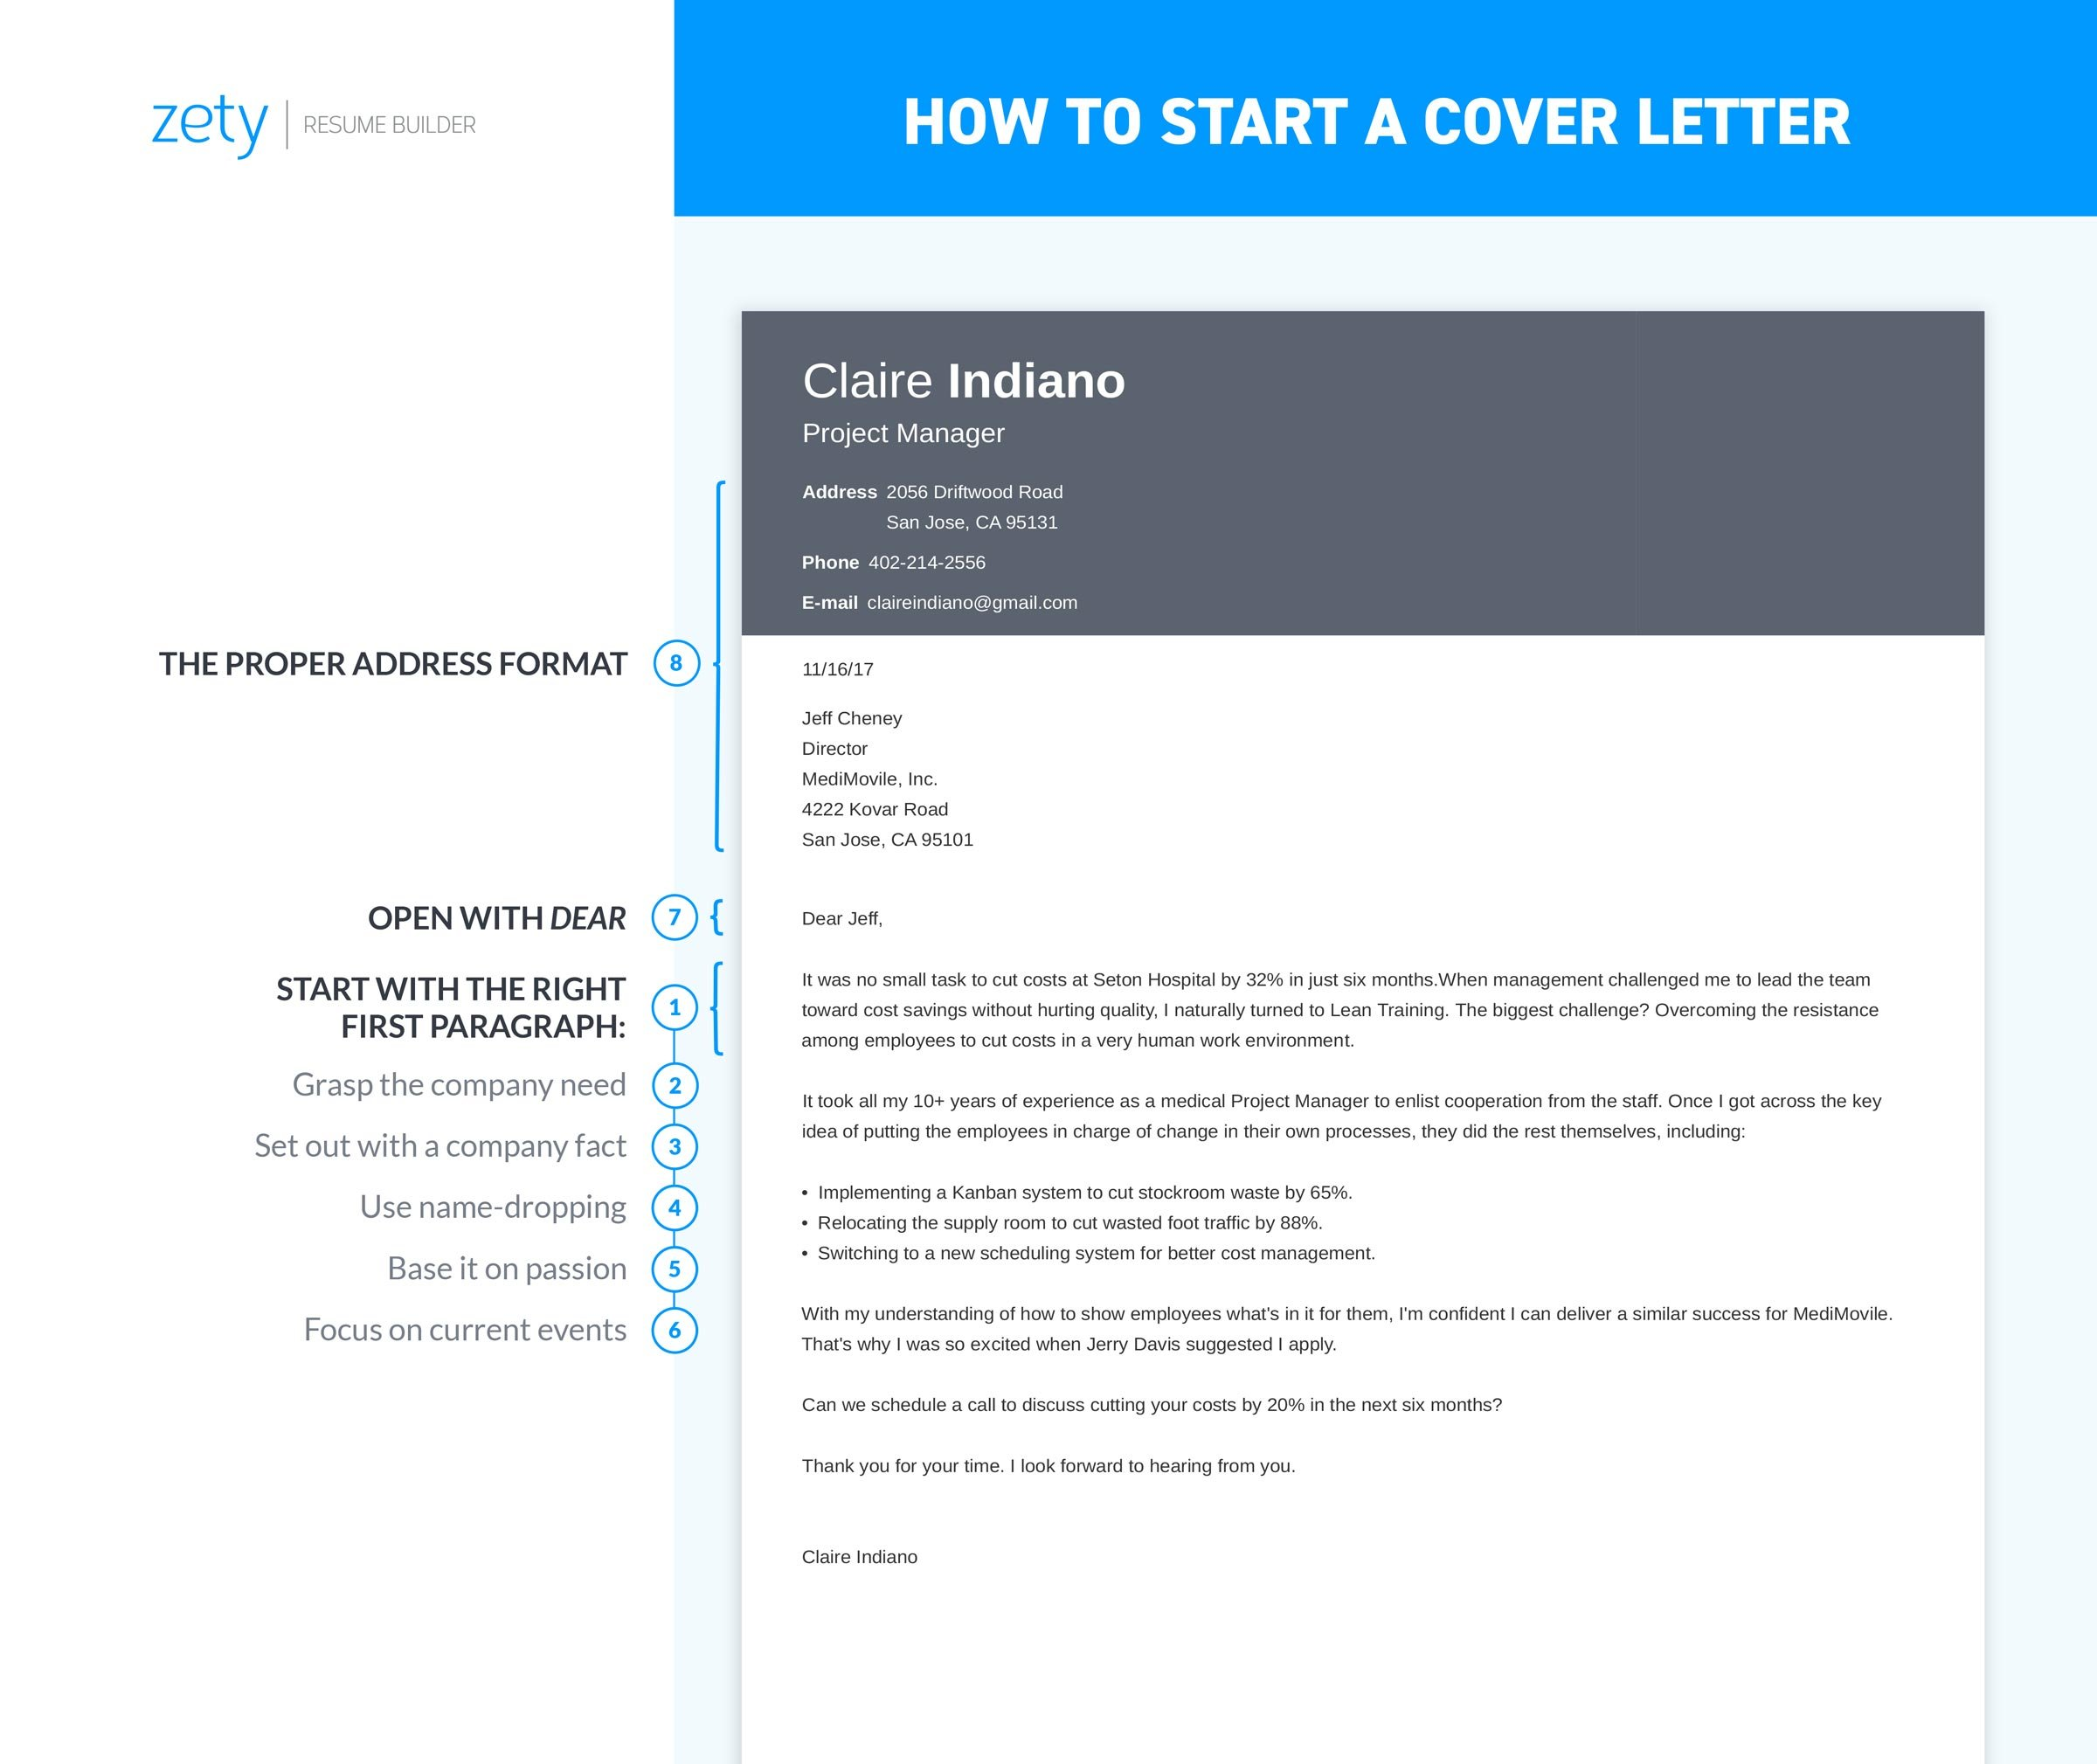 cover letter guide Get more interviews for jobs with this professional usher cover letter sample and writing guide to help you show off your talents and skills to employers.